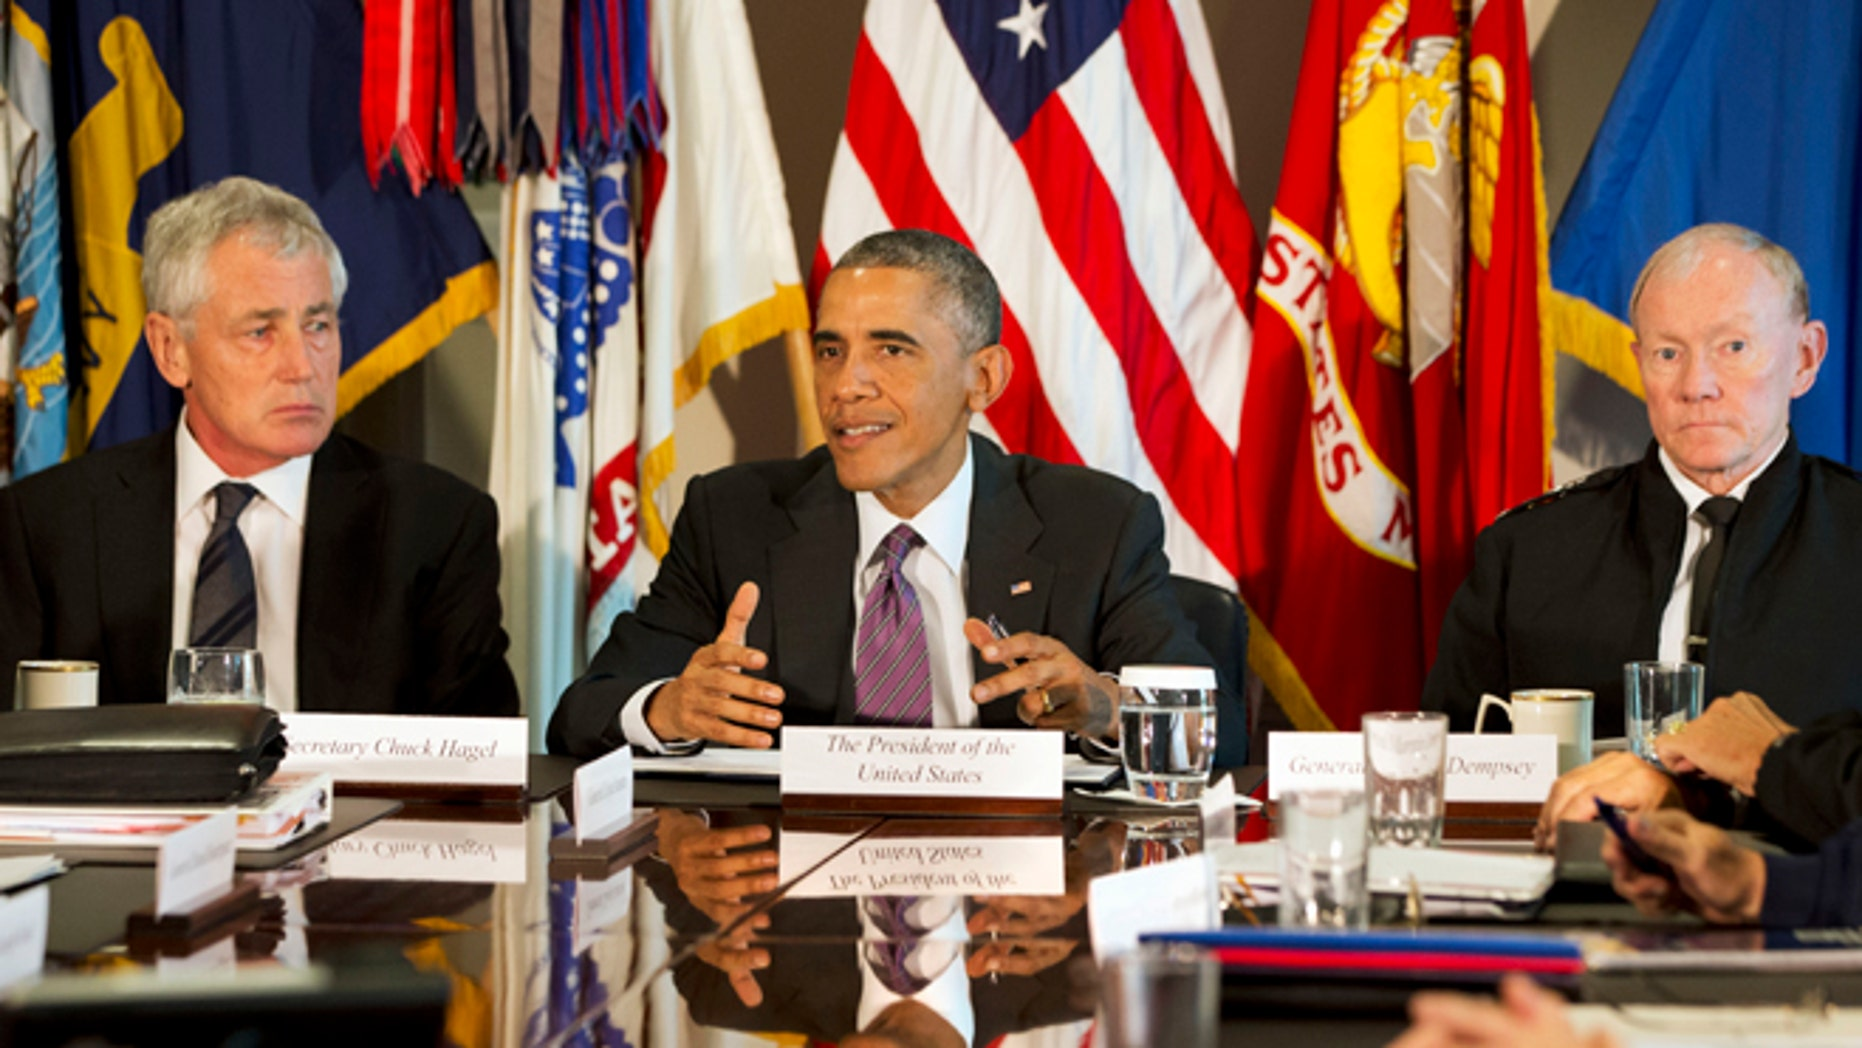 In this Wednesday, Oct. 8, 2014 photo, President Barack Obama, flanked by Defense Secretary Chuck Hagel, left, and Joint Chiefs Chairman Gen. Martin Dempsey, speaks to the media at the conclusion of a meeting with senior military leadership at the Pentagon.